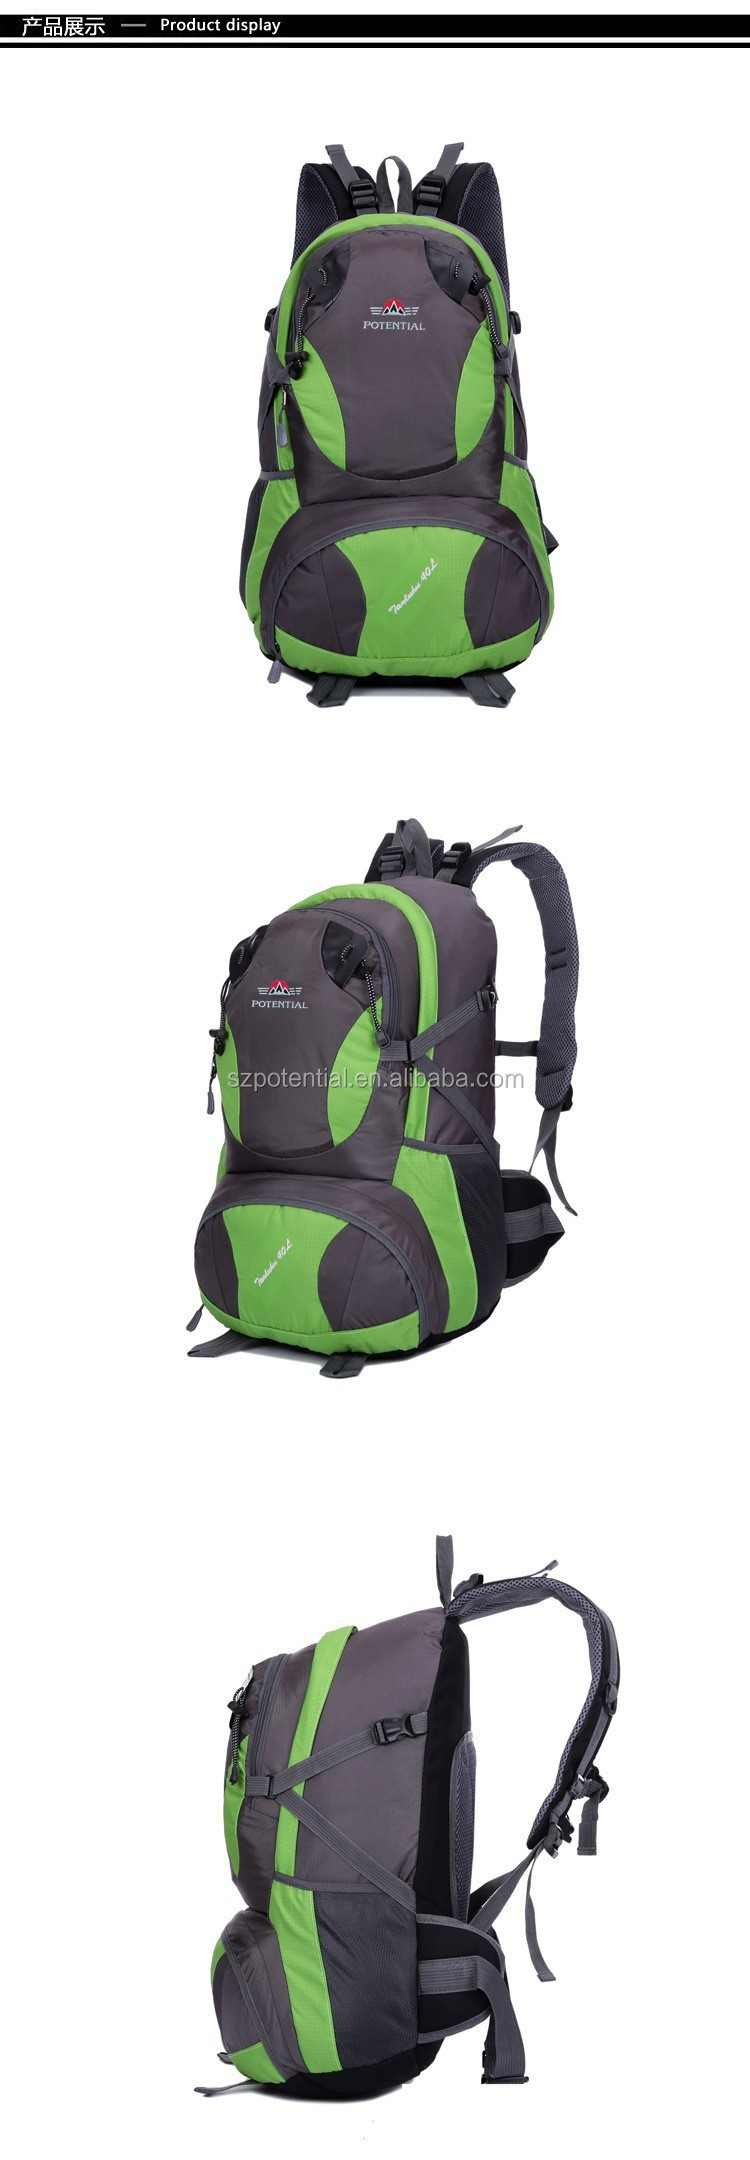 Durable nylon material high quality cheap waterproof backpack outdoor